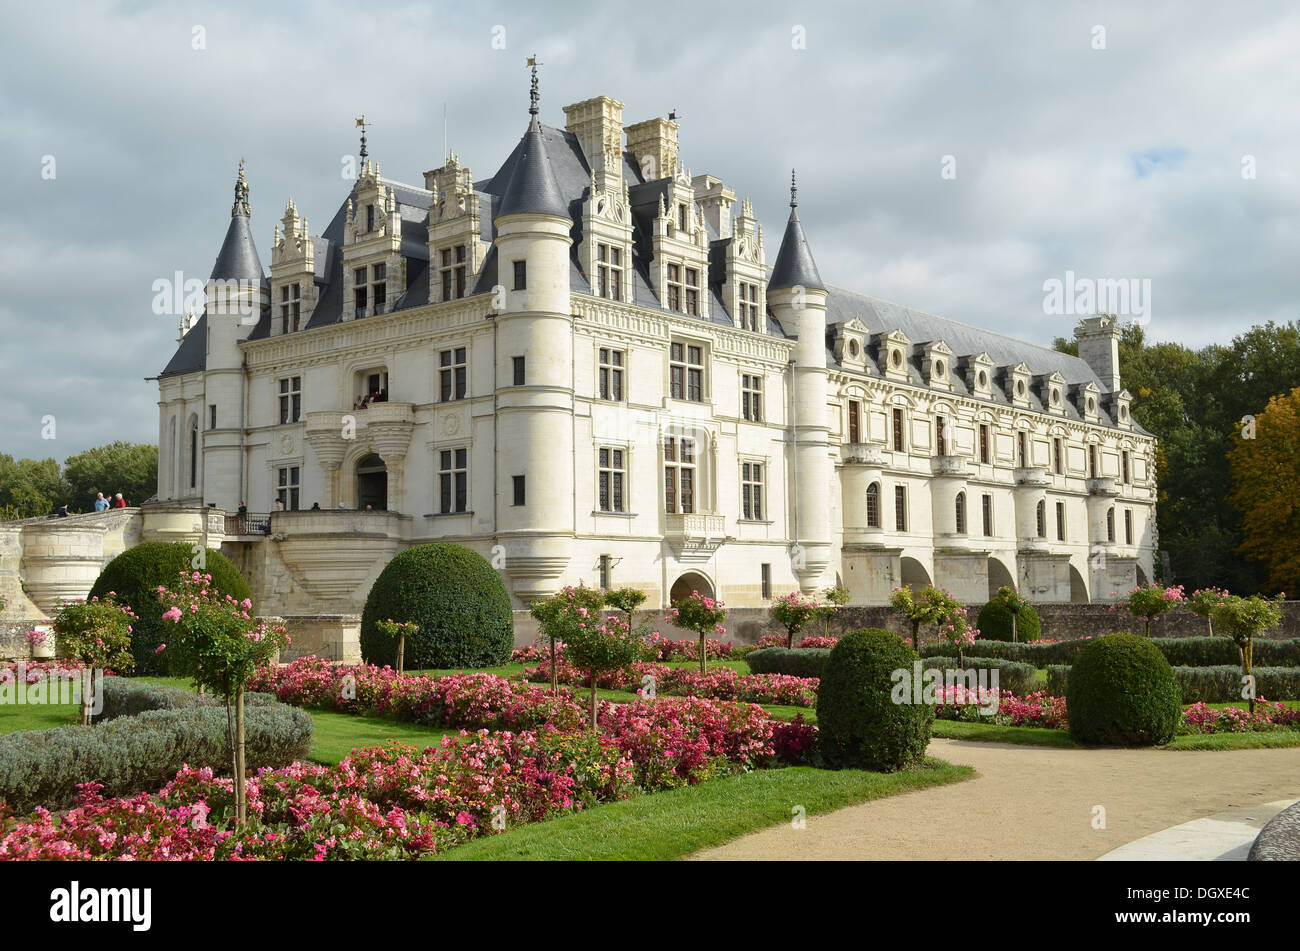 Chenonceau Chateau and Garden Loire Valley, France - Stock Image